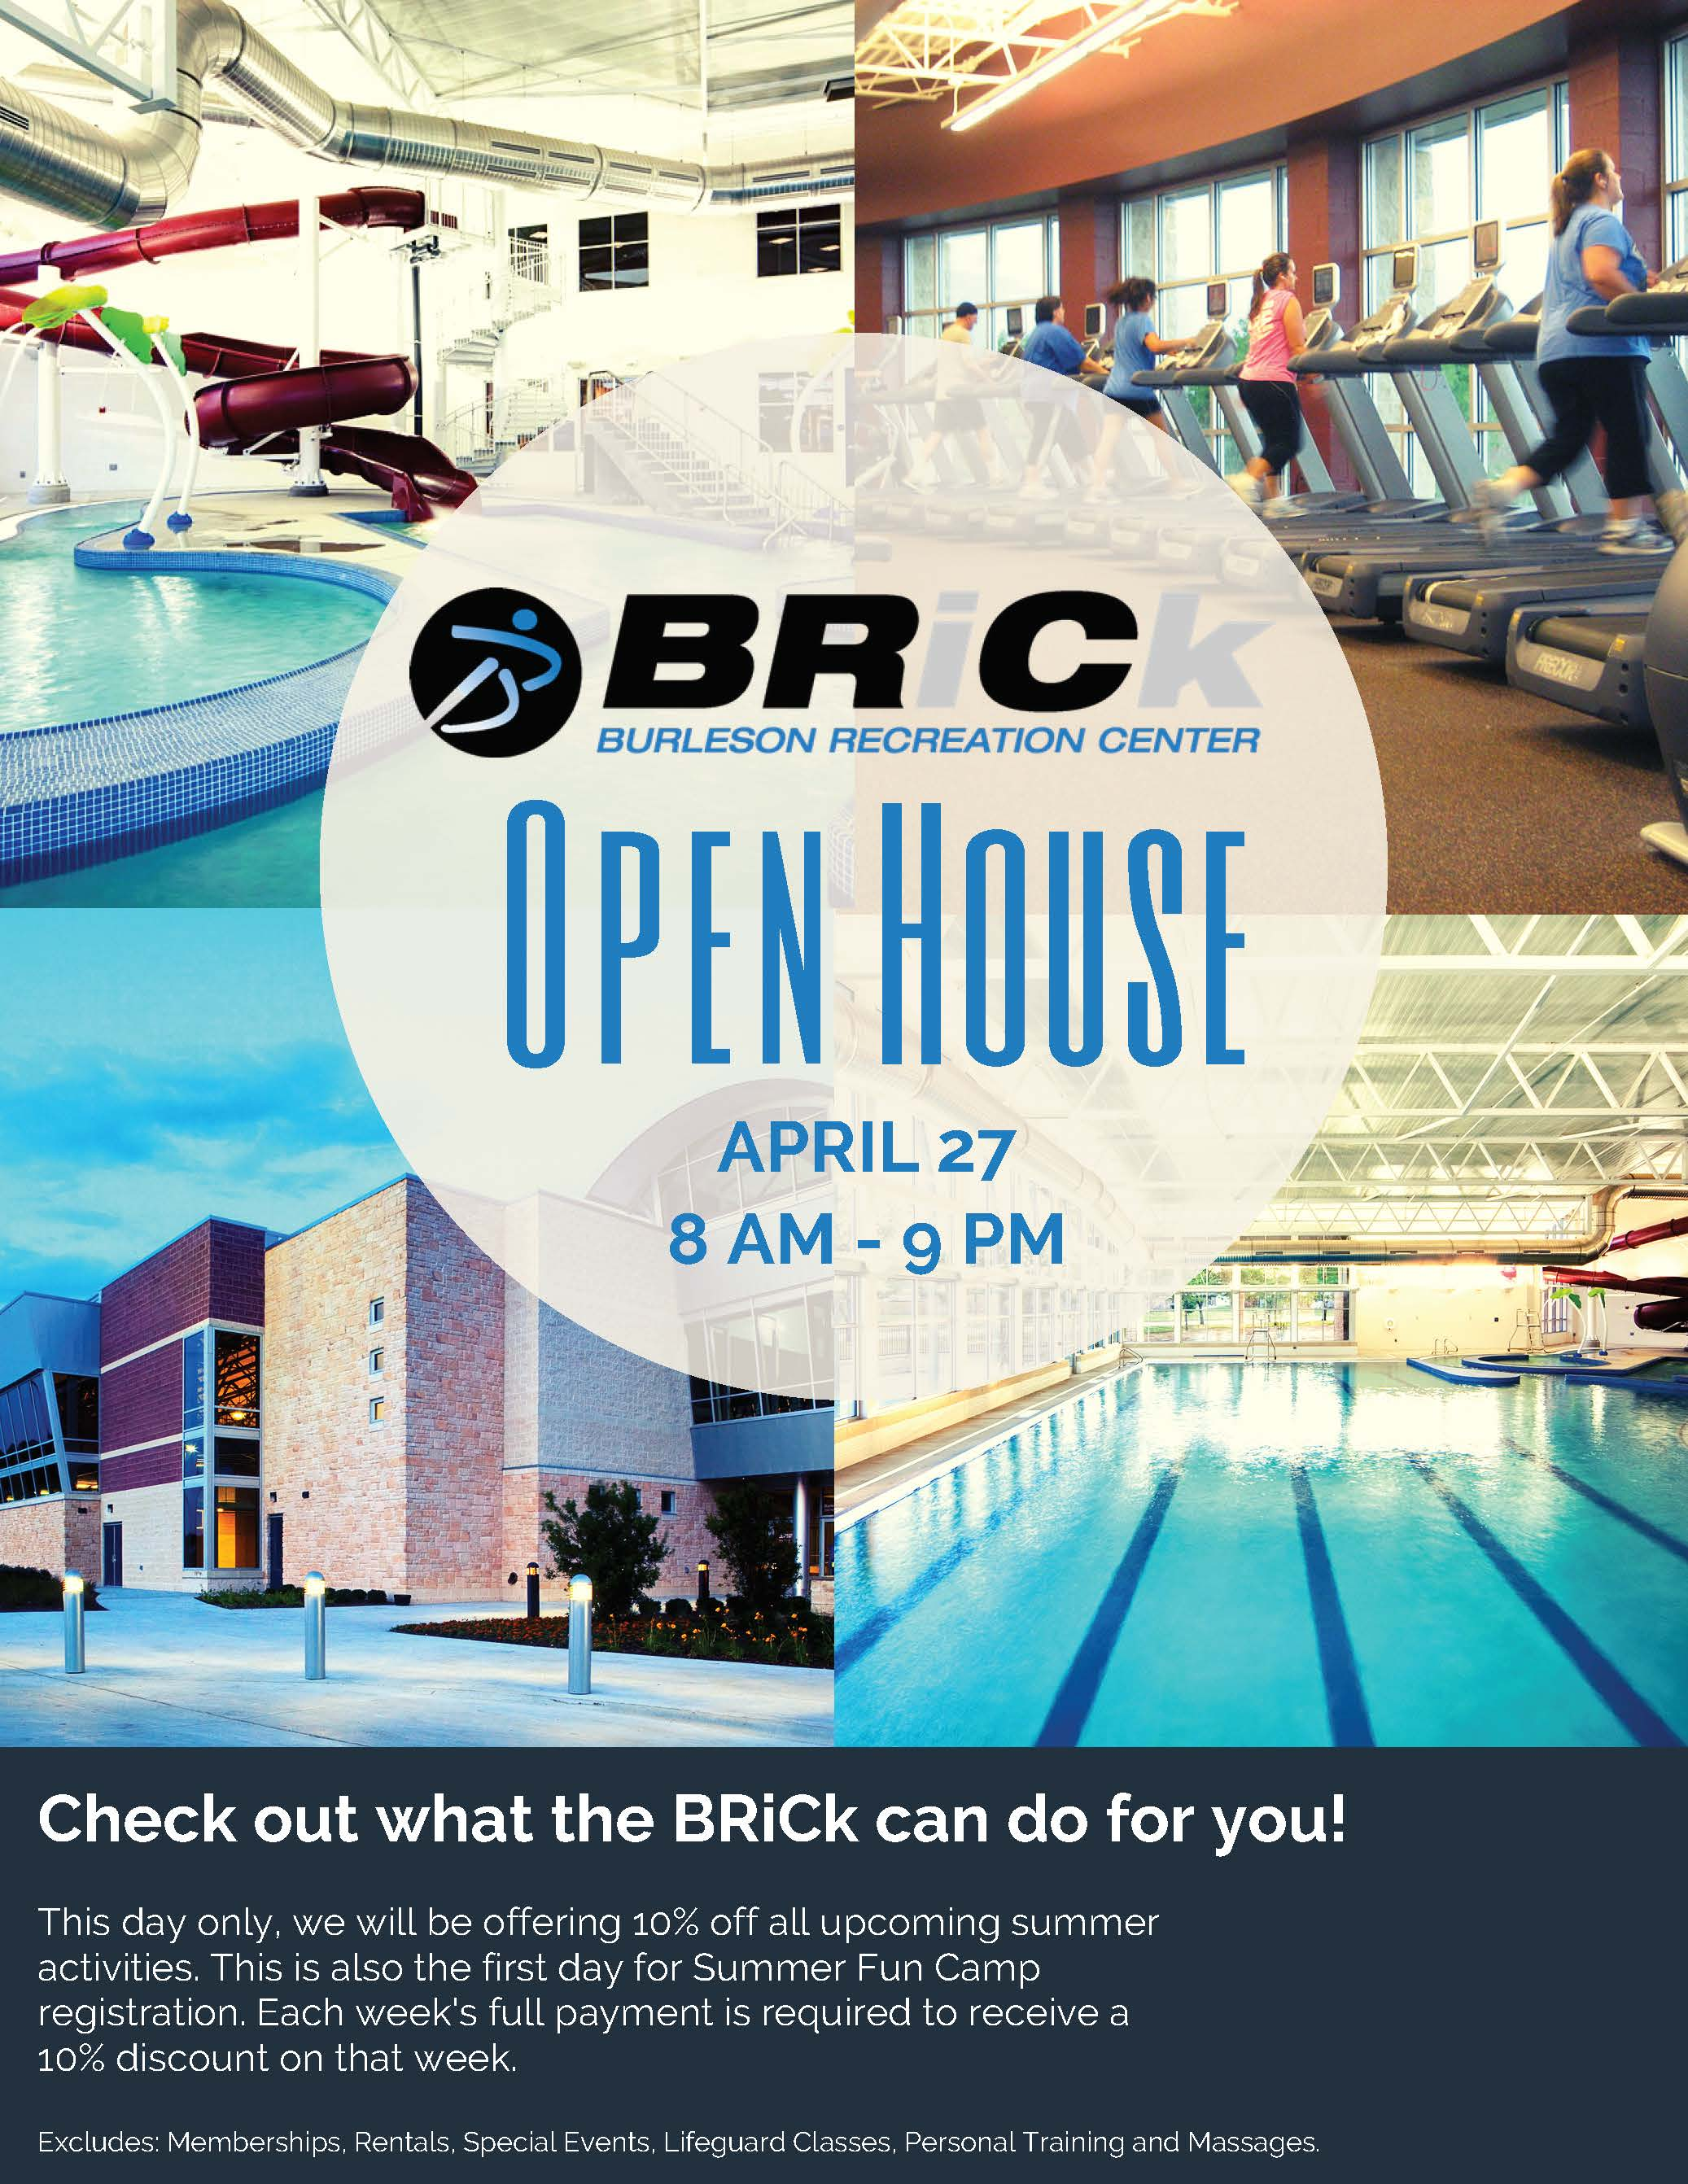 brick open house 2020